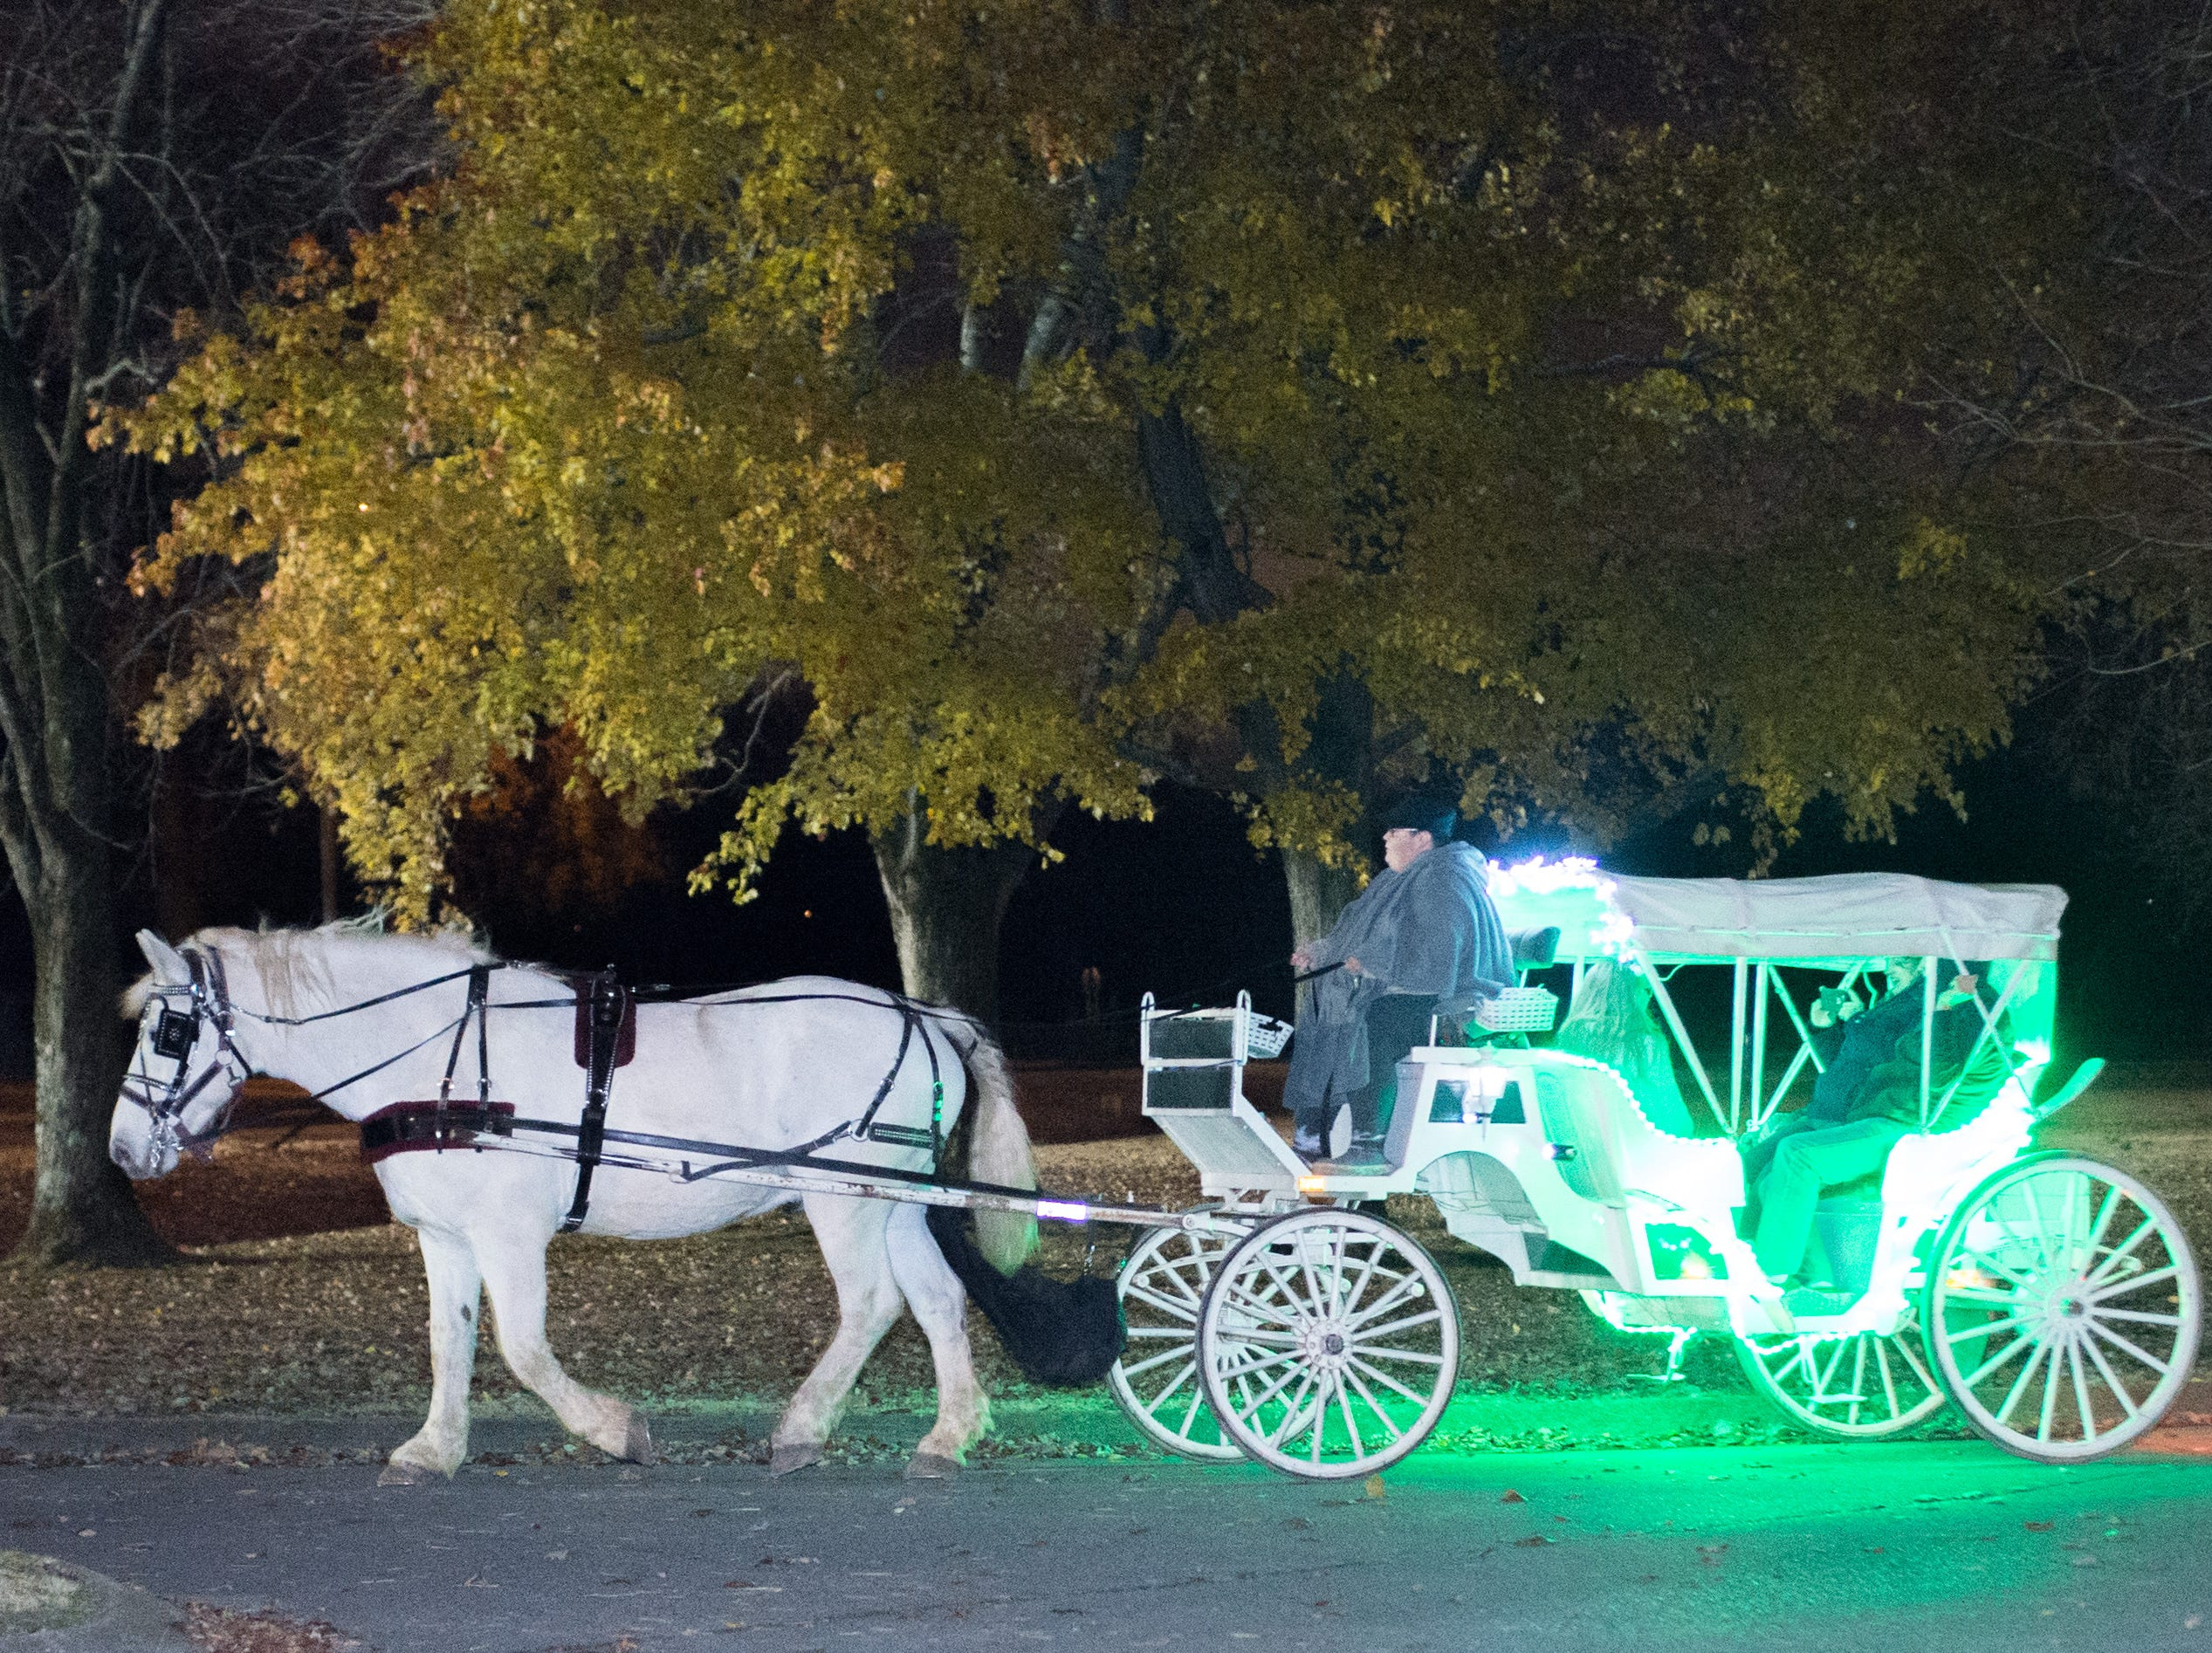 Sugar Creek Carriage Rides add fun to the Hendersonville HolidayFest Annual Tree Lighting Ceremony at Memorial Park on Sunday, Nov. 25.